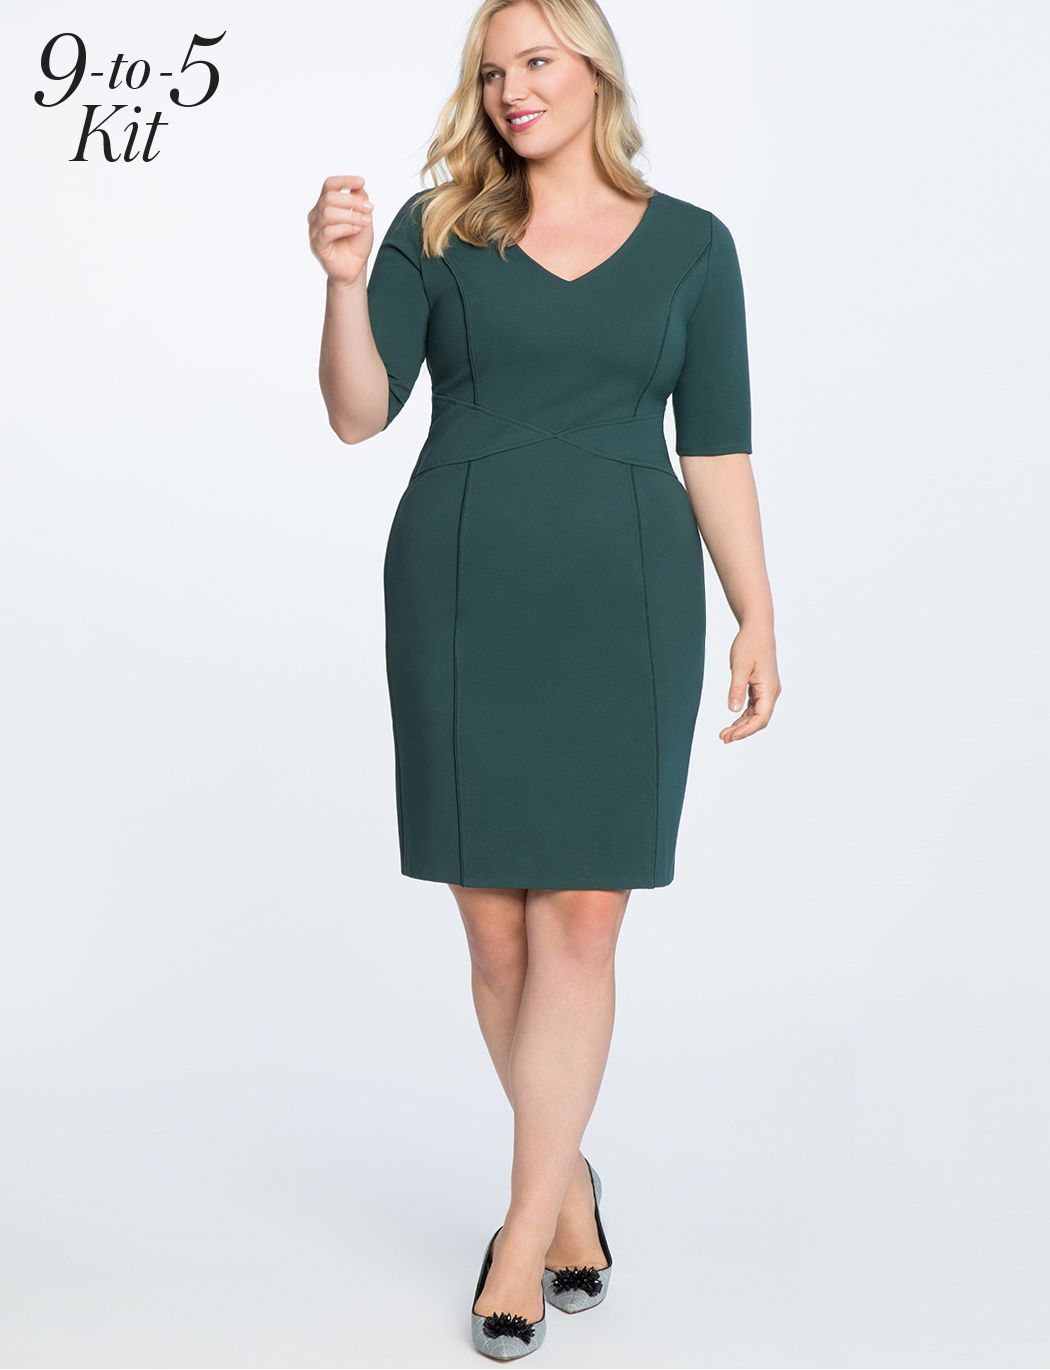 9 To 5 Stretch Work Dress Women S Plus Size Dresses Eloquii Work Dresses For Women Plus Size Dresses Dresses For Work